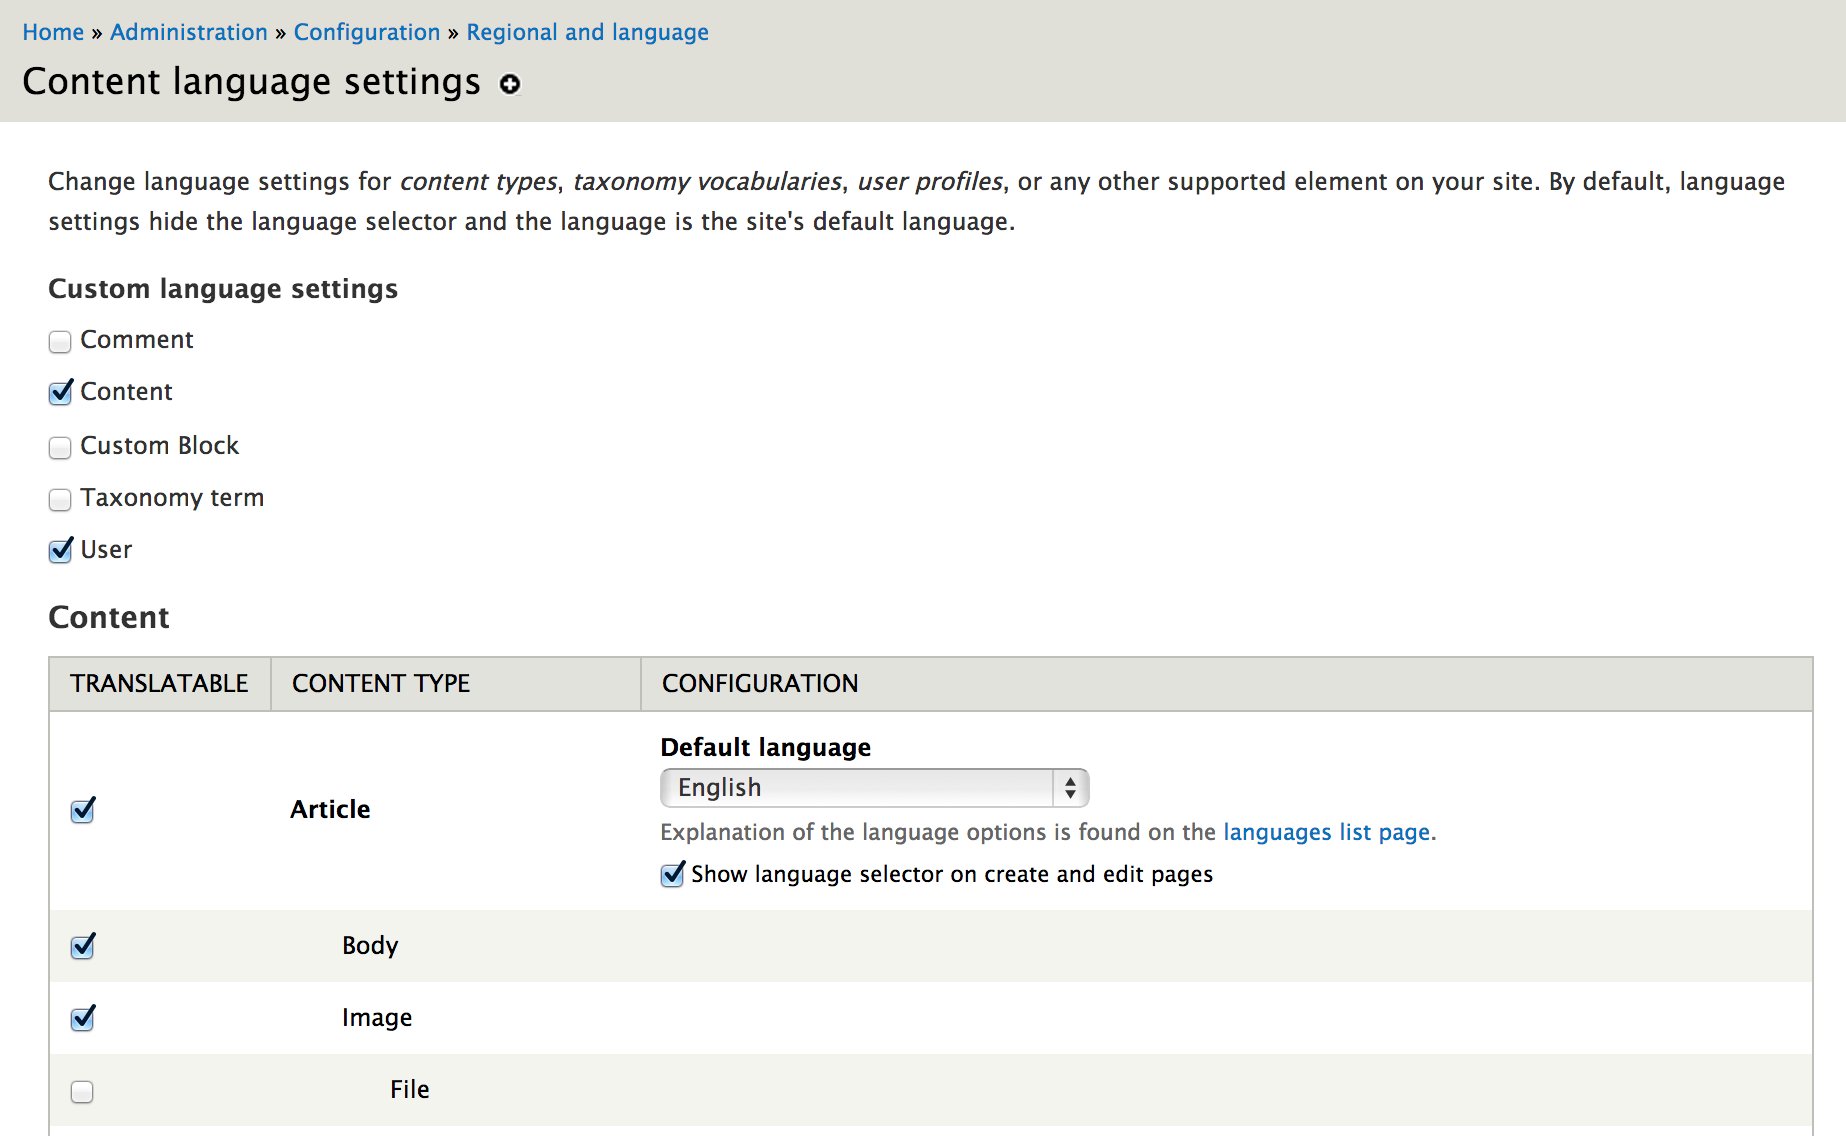 Content language settings config page